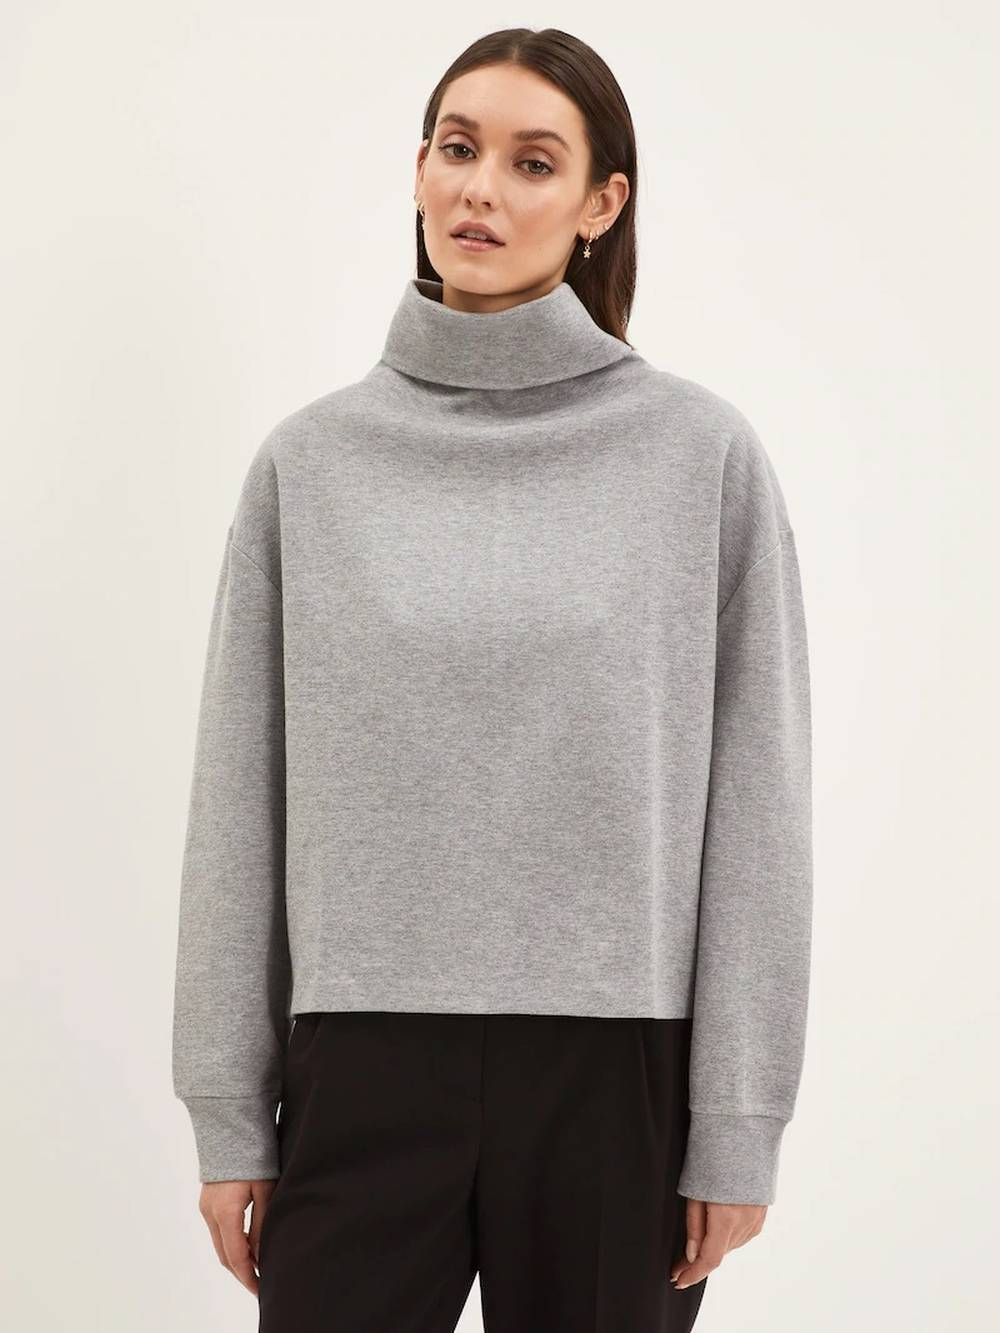 frank and oak ethically made turtleneck